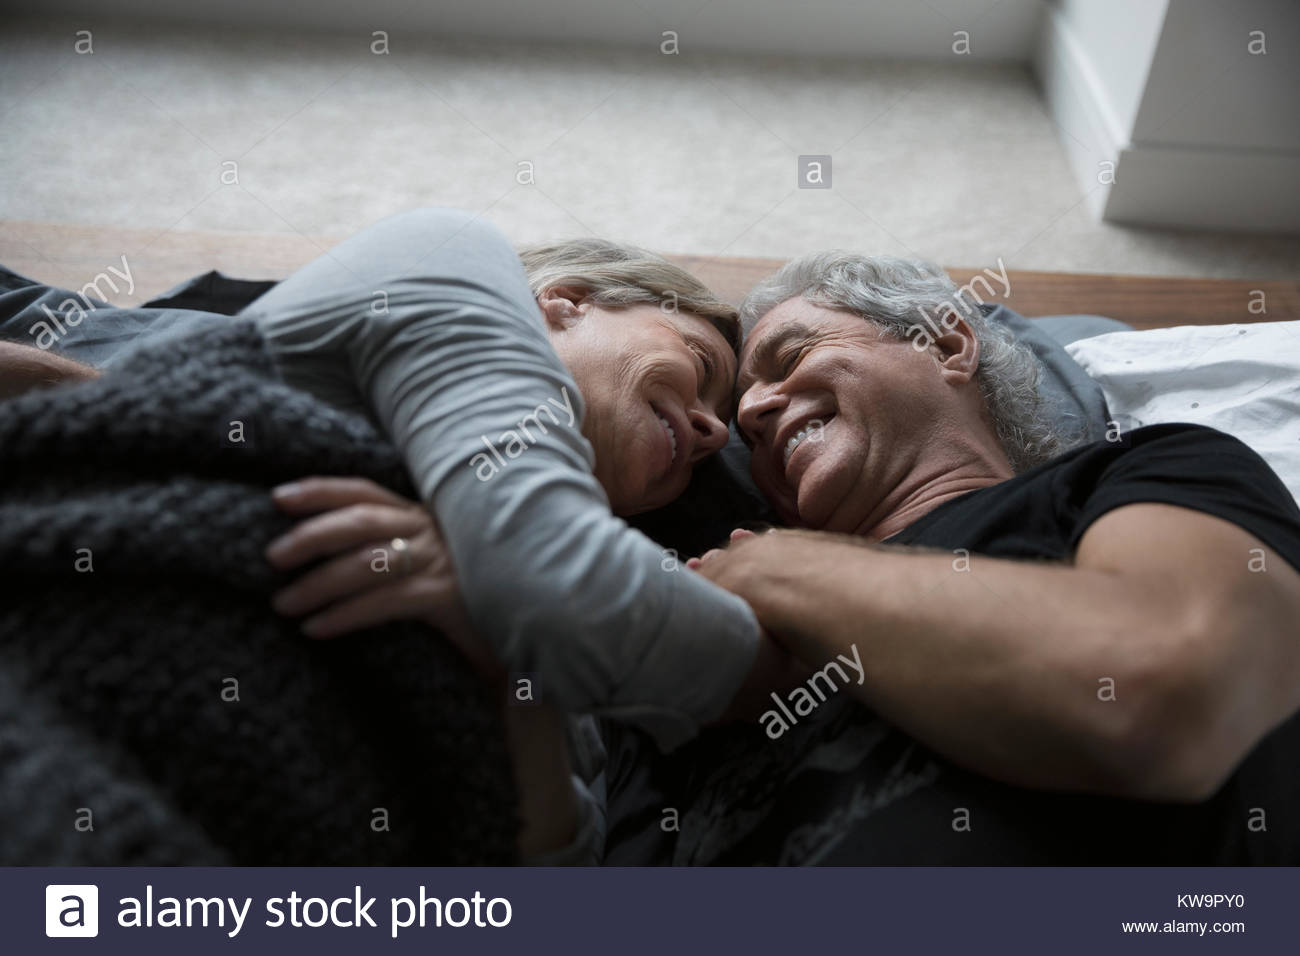 Affectueux,romantic senior couple cuddling in bed Photo Stock